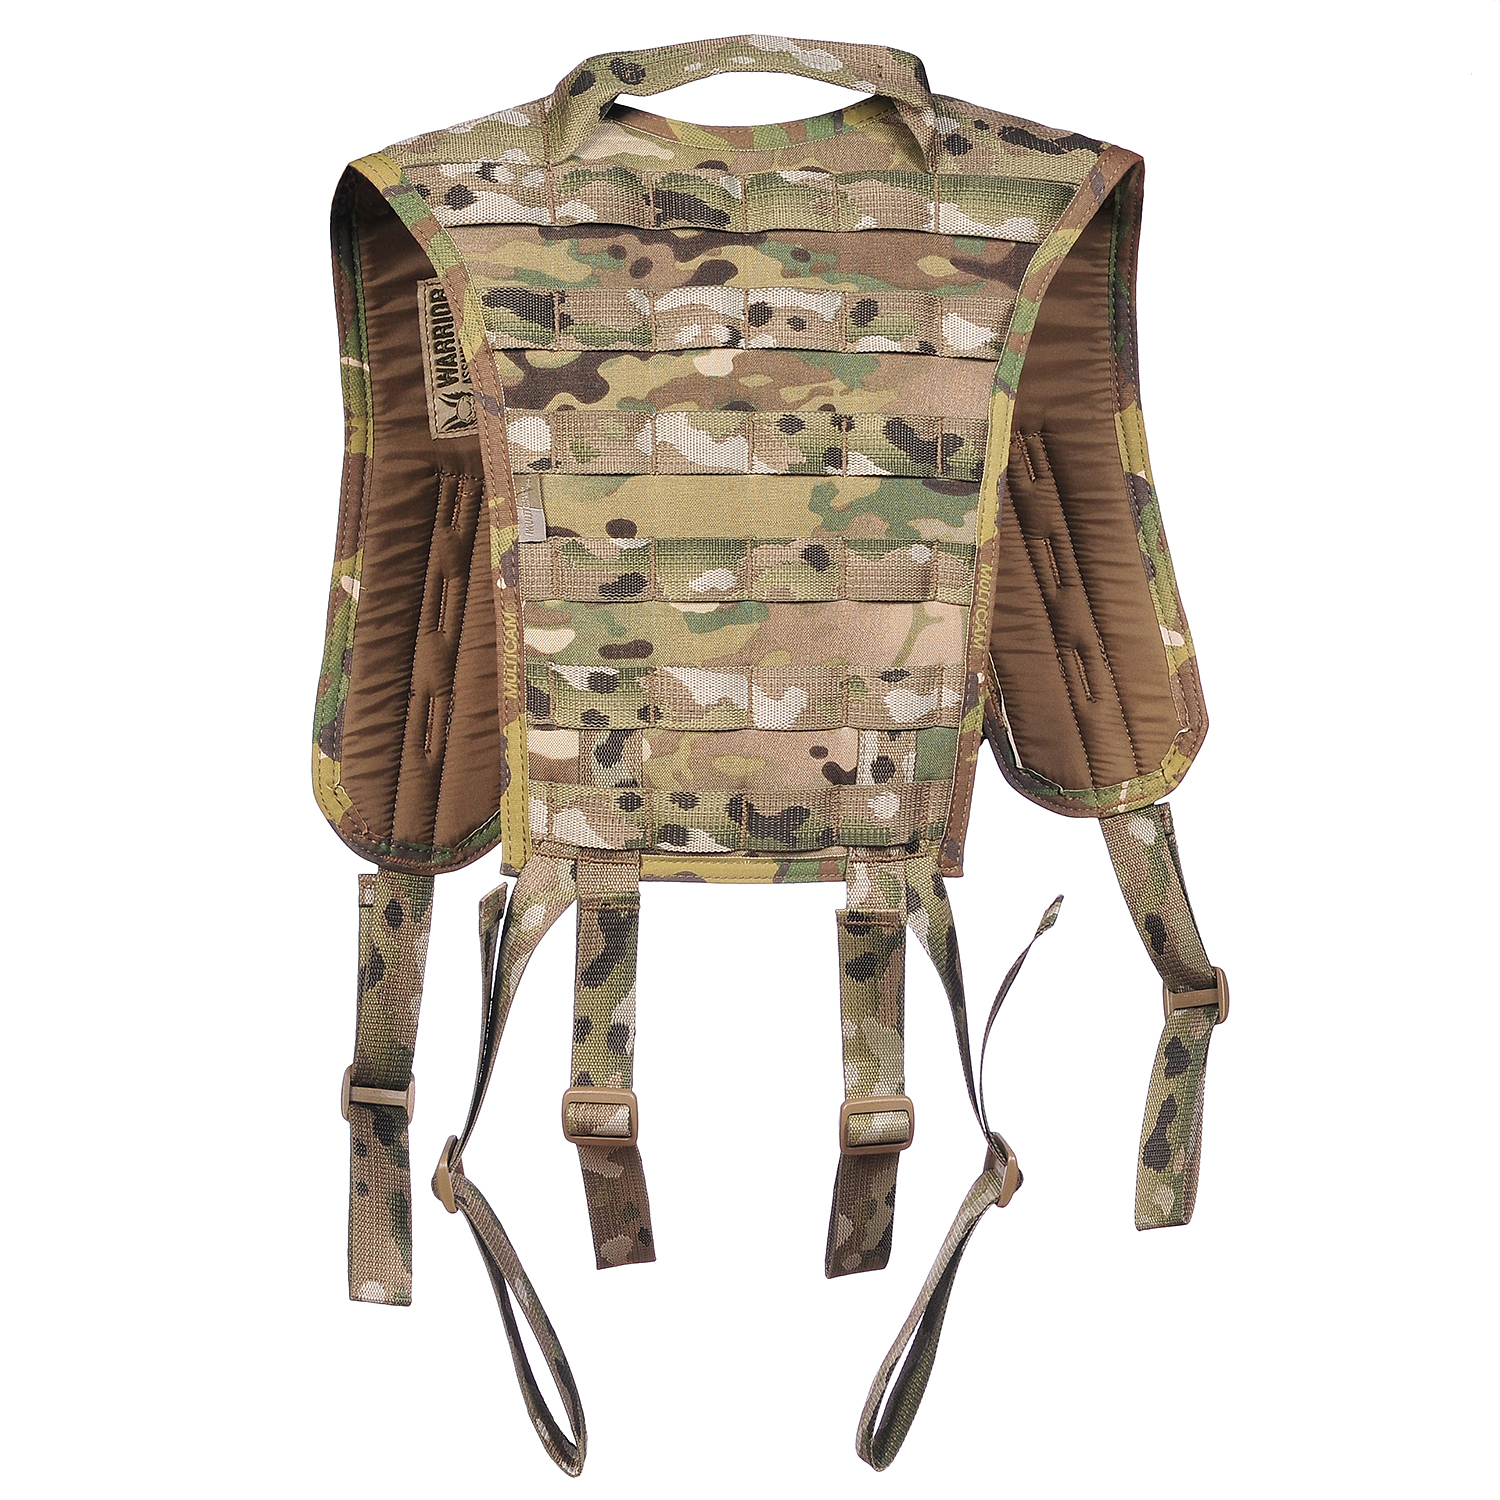 Tактическая платформа Elite Ops MOLLE Harness Warrior Assault Systems, цвет – MultiCam